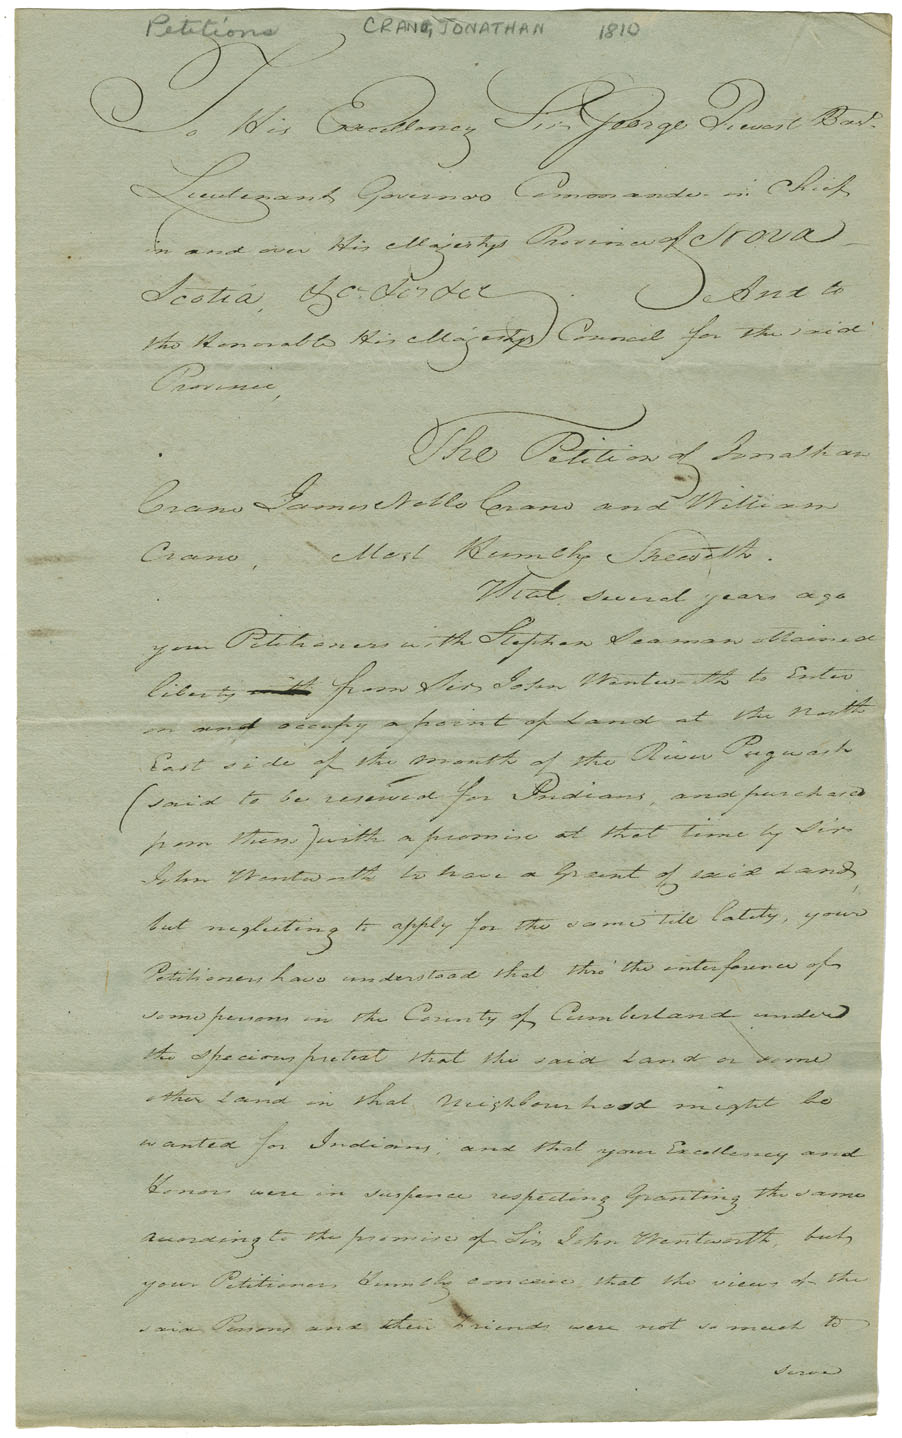 Petition for a licence of occupation by Crane and others. Some years ago the petitioners obtained leave to occupy a point of land at the northeast side of the mouth of the River Pugwash. People have protected it on behalf of the Mi'kmaq but the petitioners maintain they wish the Mi'kmaq there to cut lumber for them in exchange for rum. Request a more ample licence of occupation than that originally given them by Gov. John Wentworth. Noted: